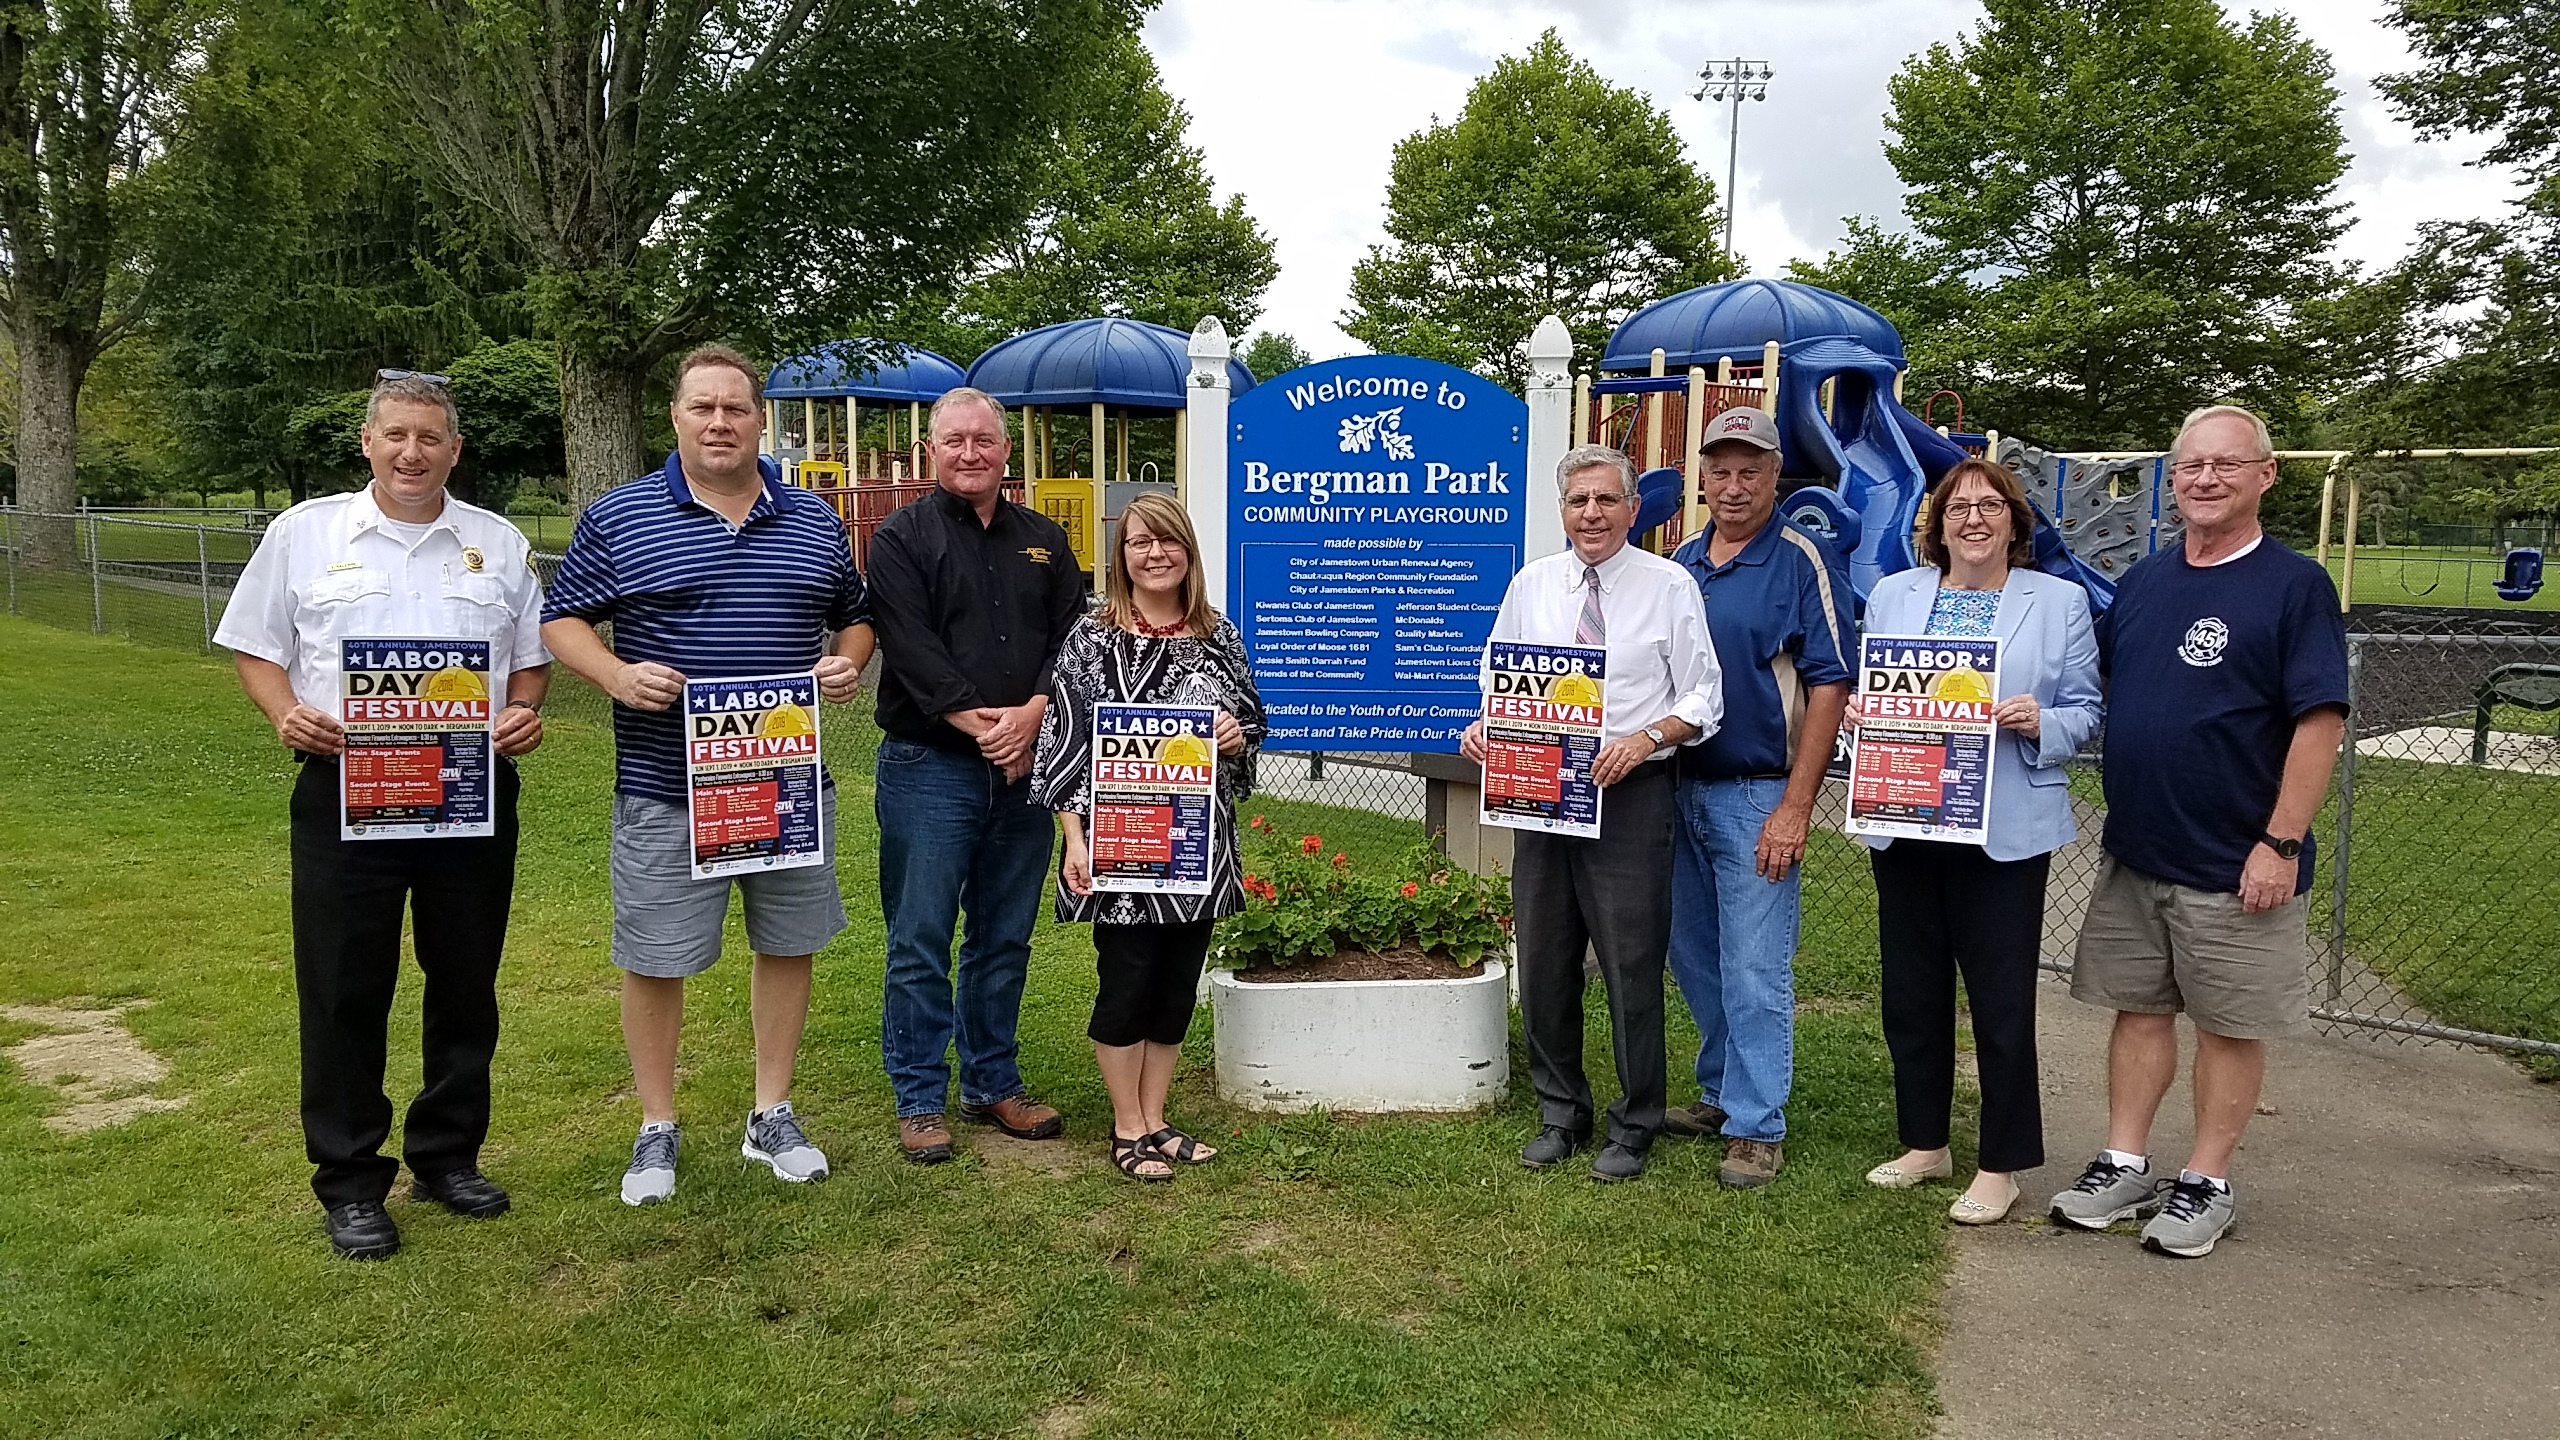 Clarence Center Labor Day Fair 2020.Labor Day Festival City Of Jamestown New York